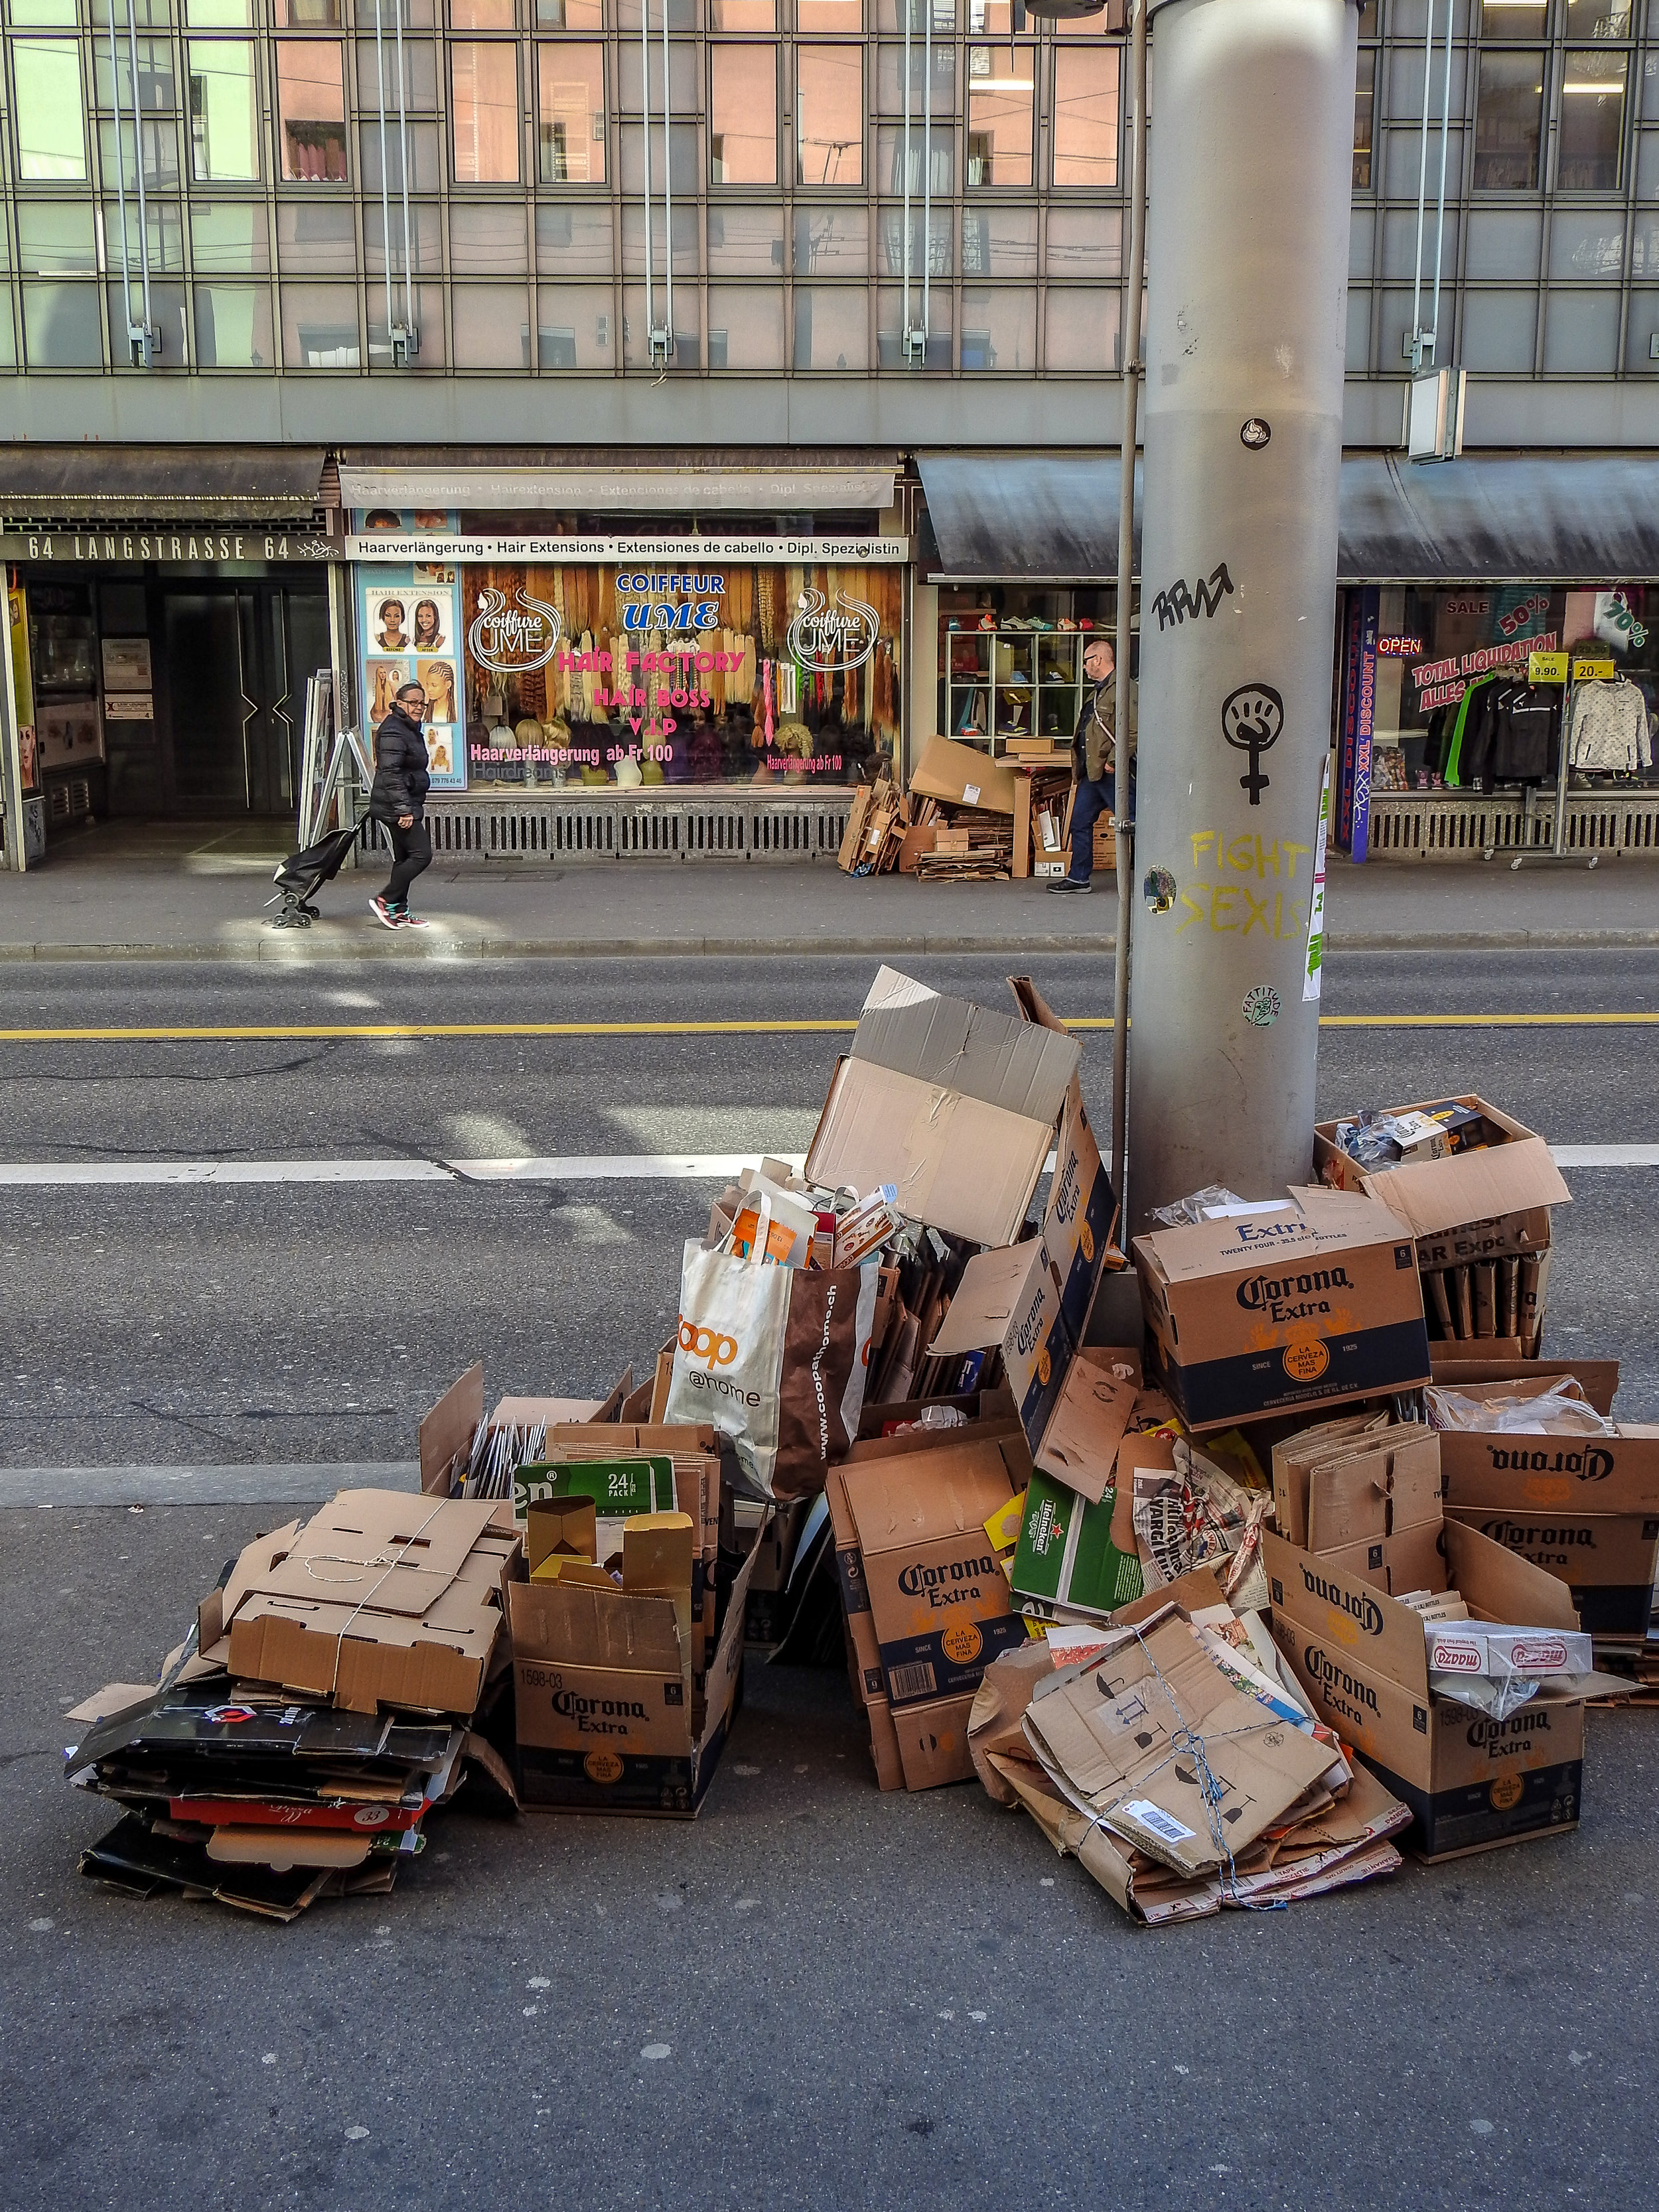 Caught illegally dumping trash? Pay the fine directly in cash and no-one has to know. Photo: (C) Remko Tanis